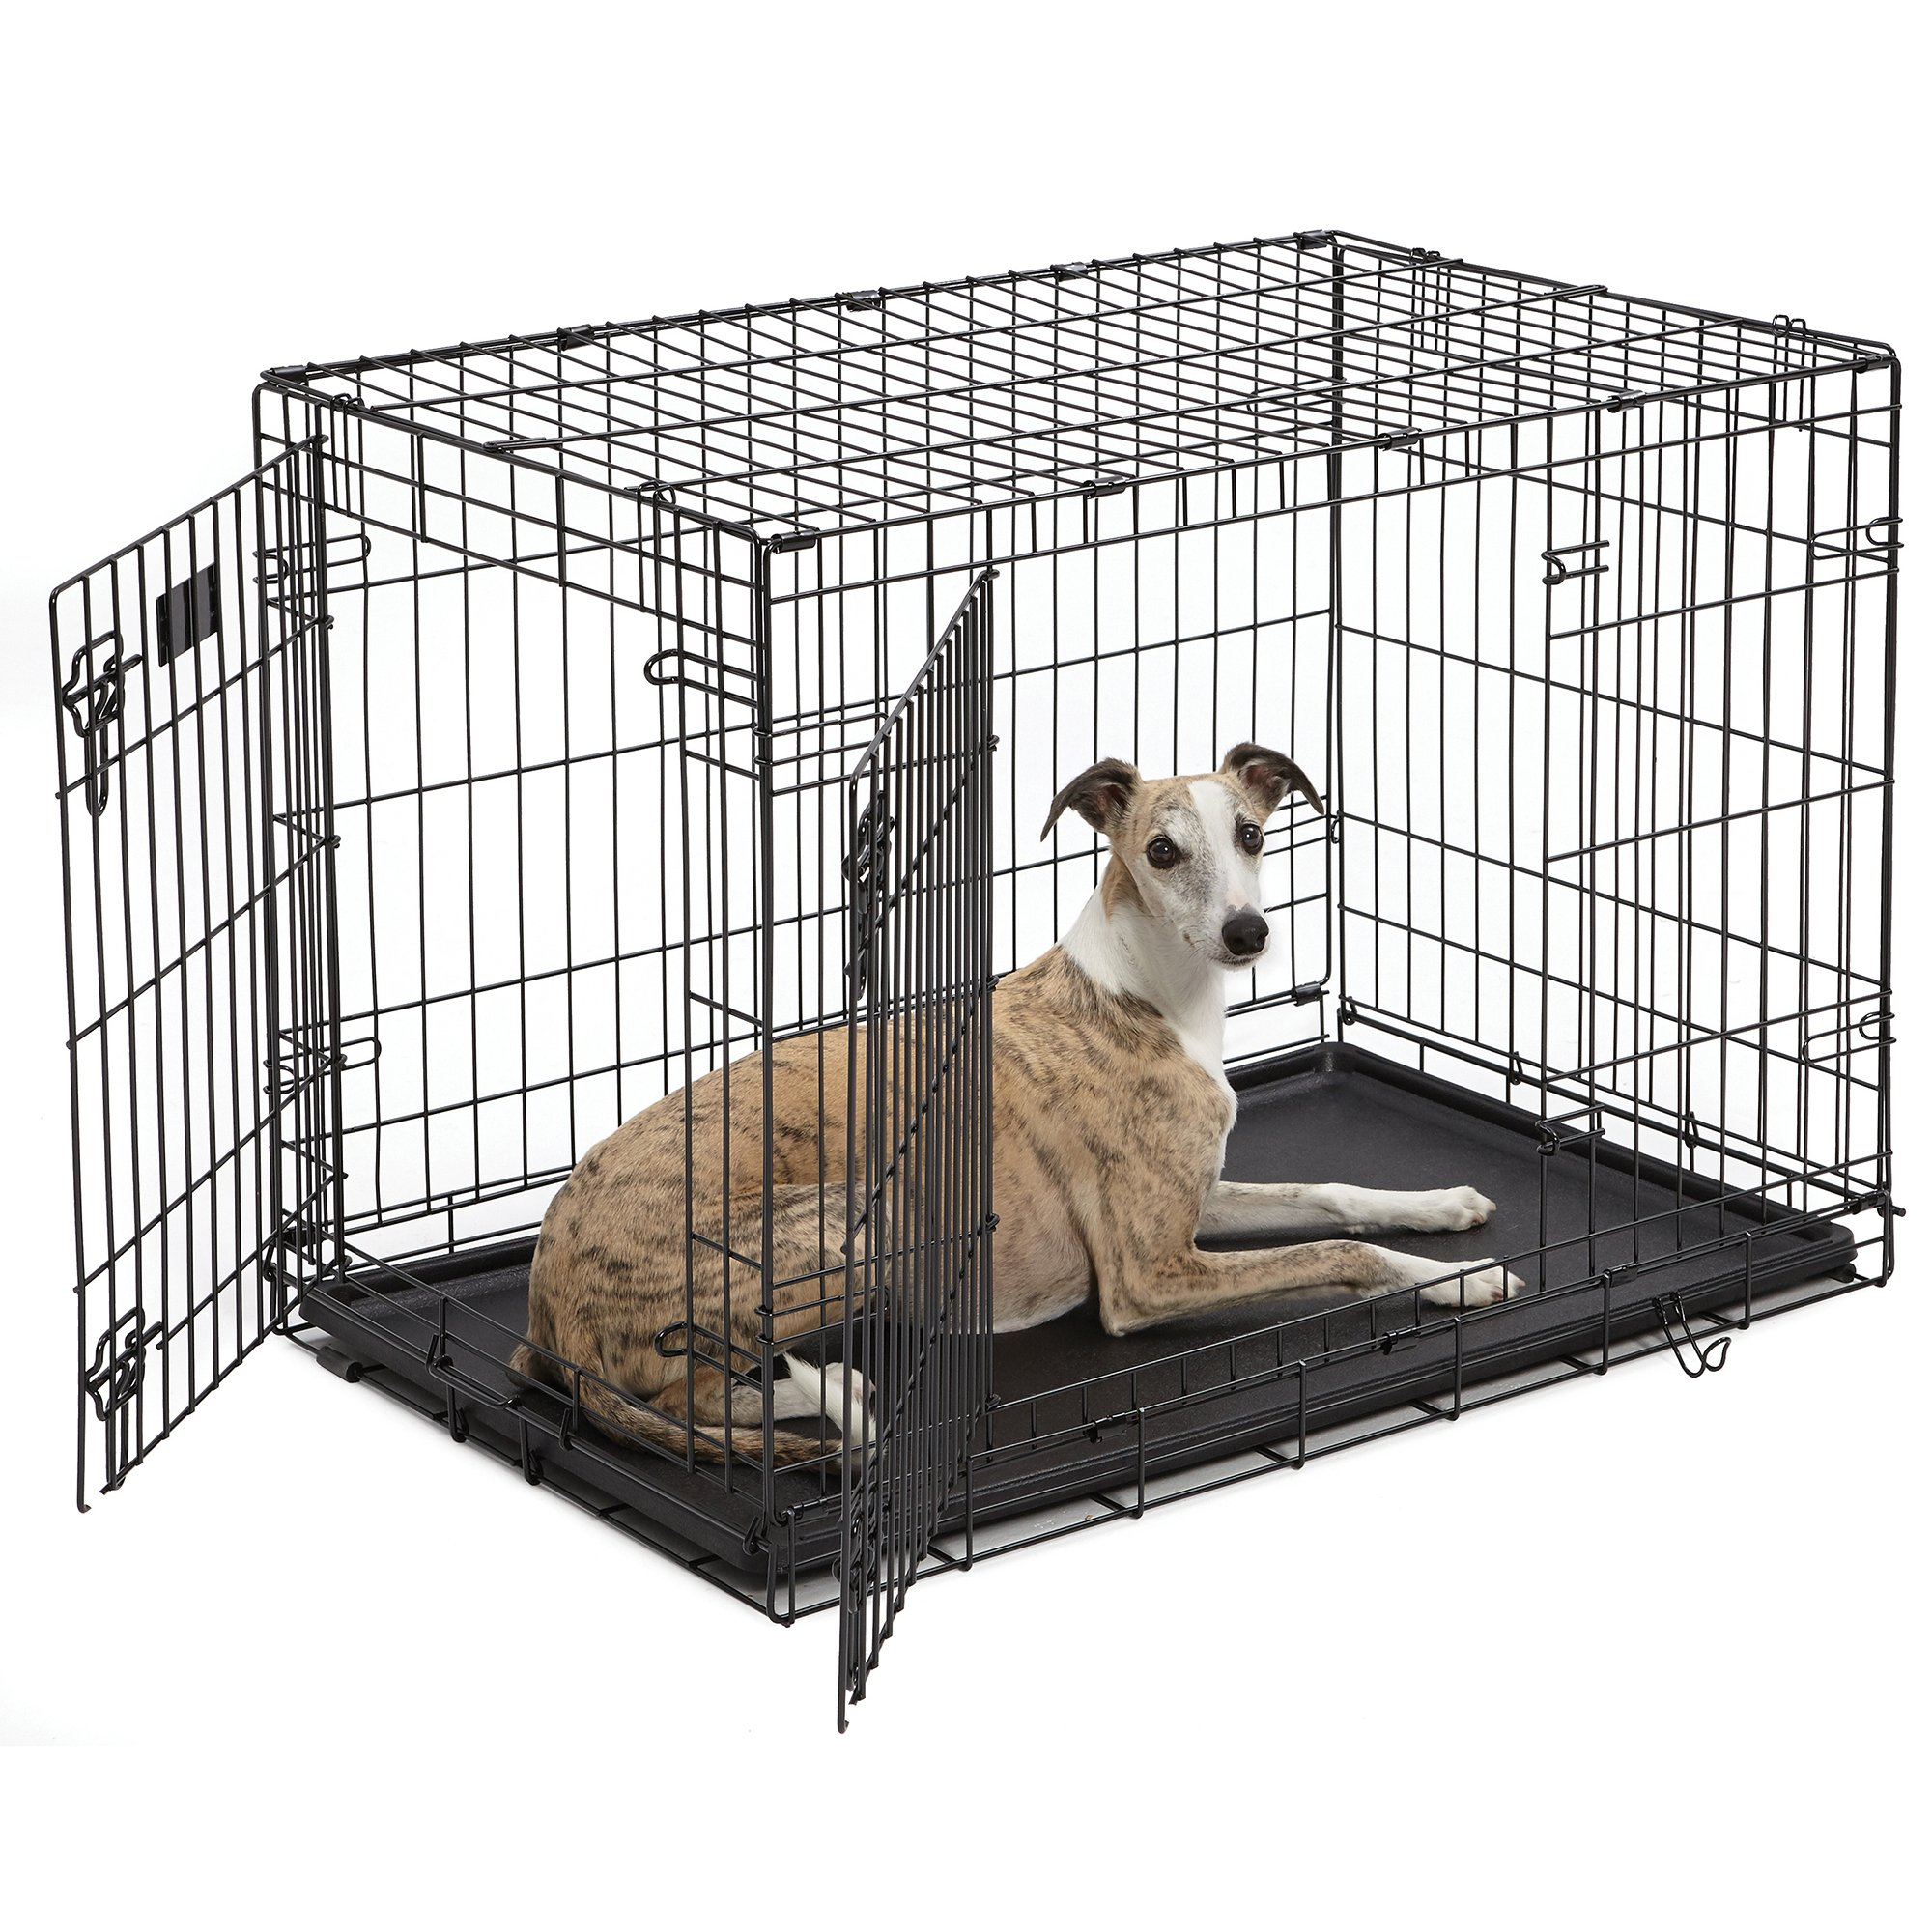 Metal & Wire Dog Crates + Free Shipping | Petco